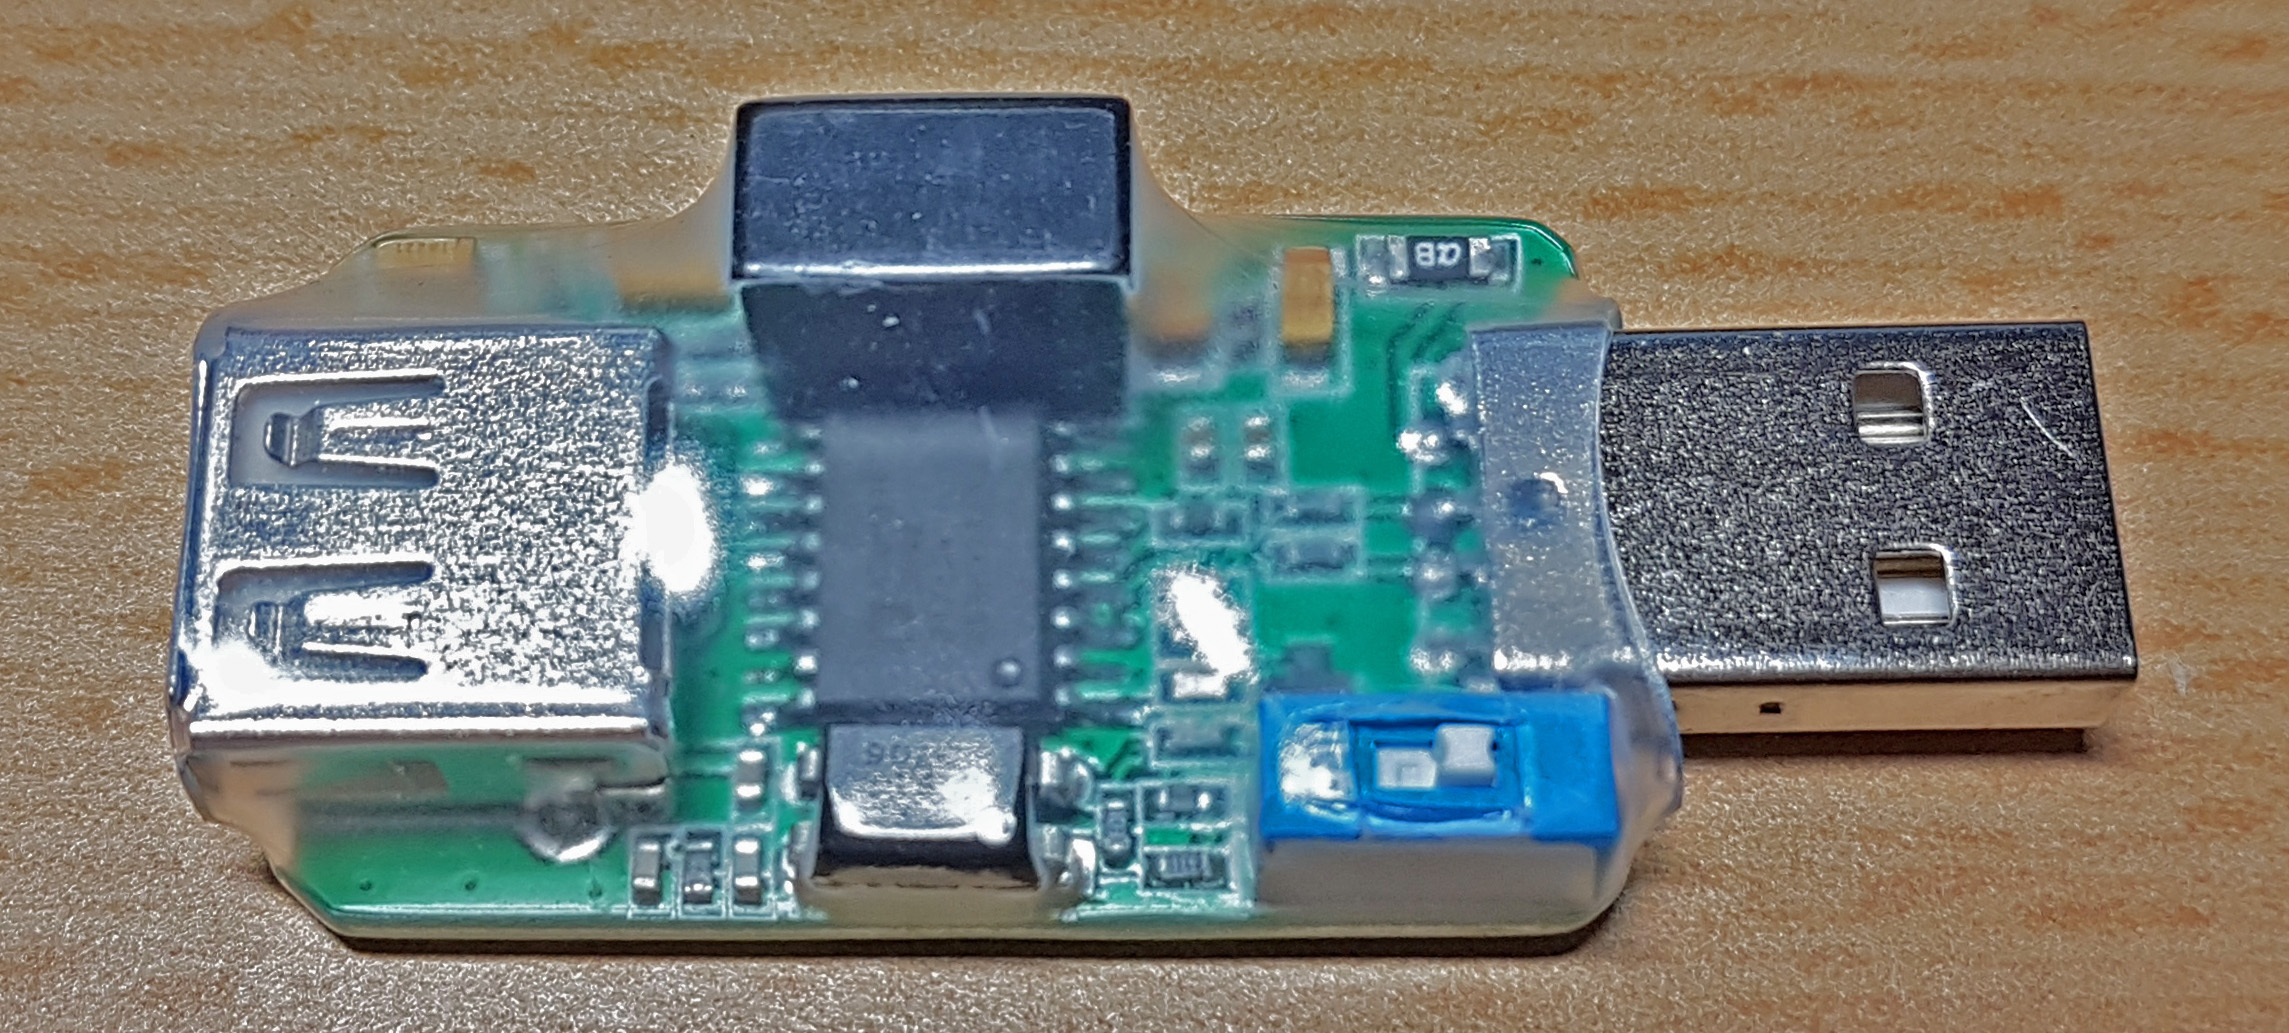 USB-Isolator (Symbolfoto)